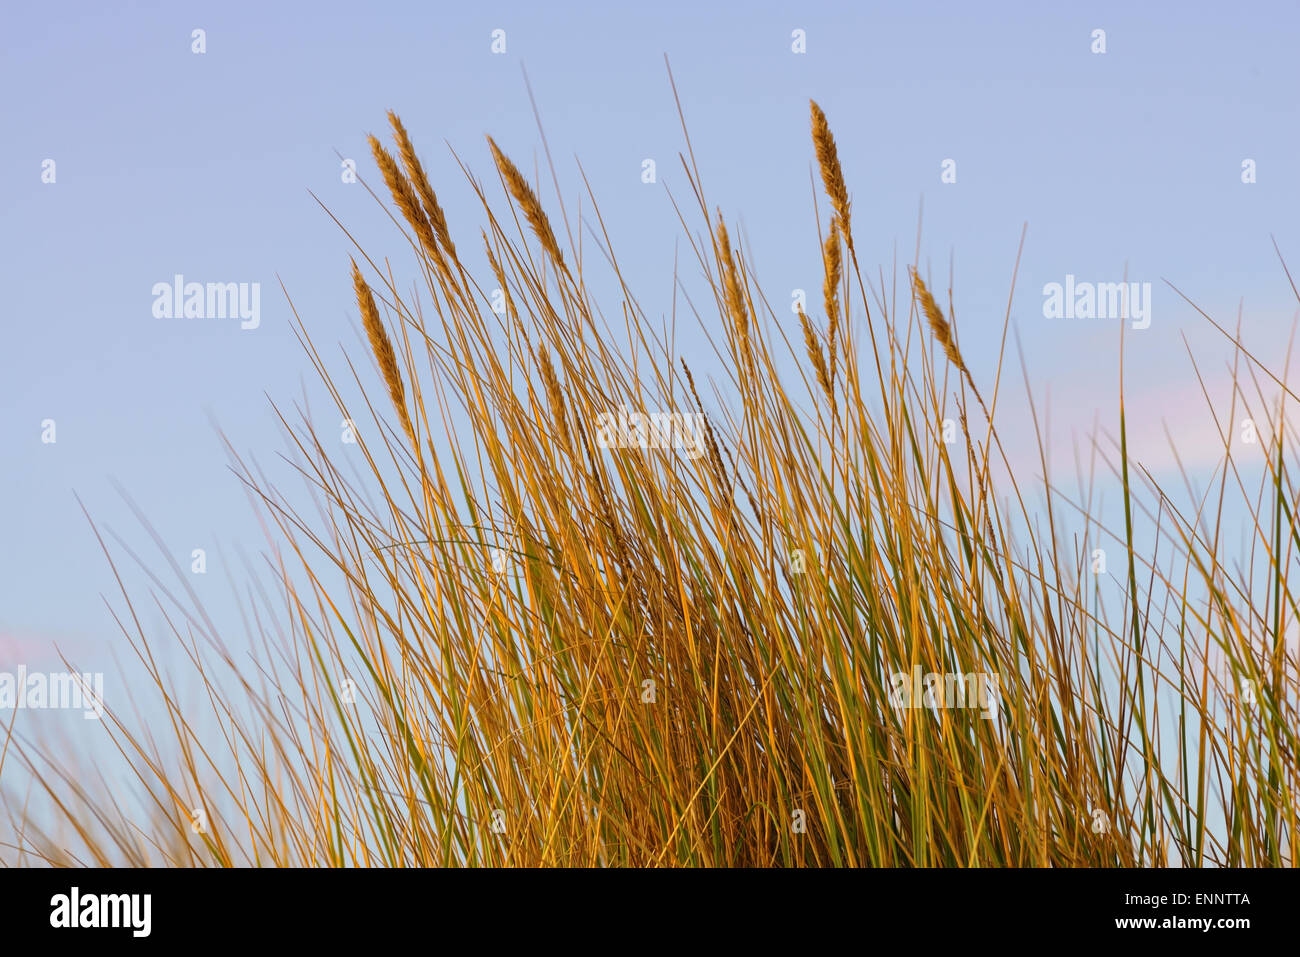 Marram grass seed heads on sand dunes in Scotland. - Stock Image